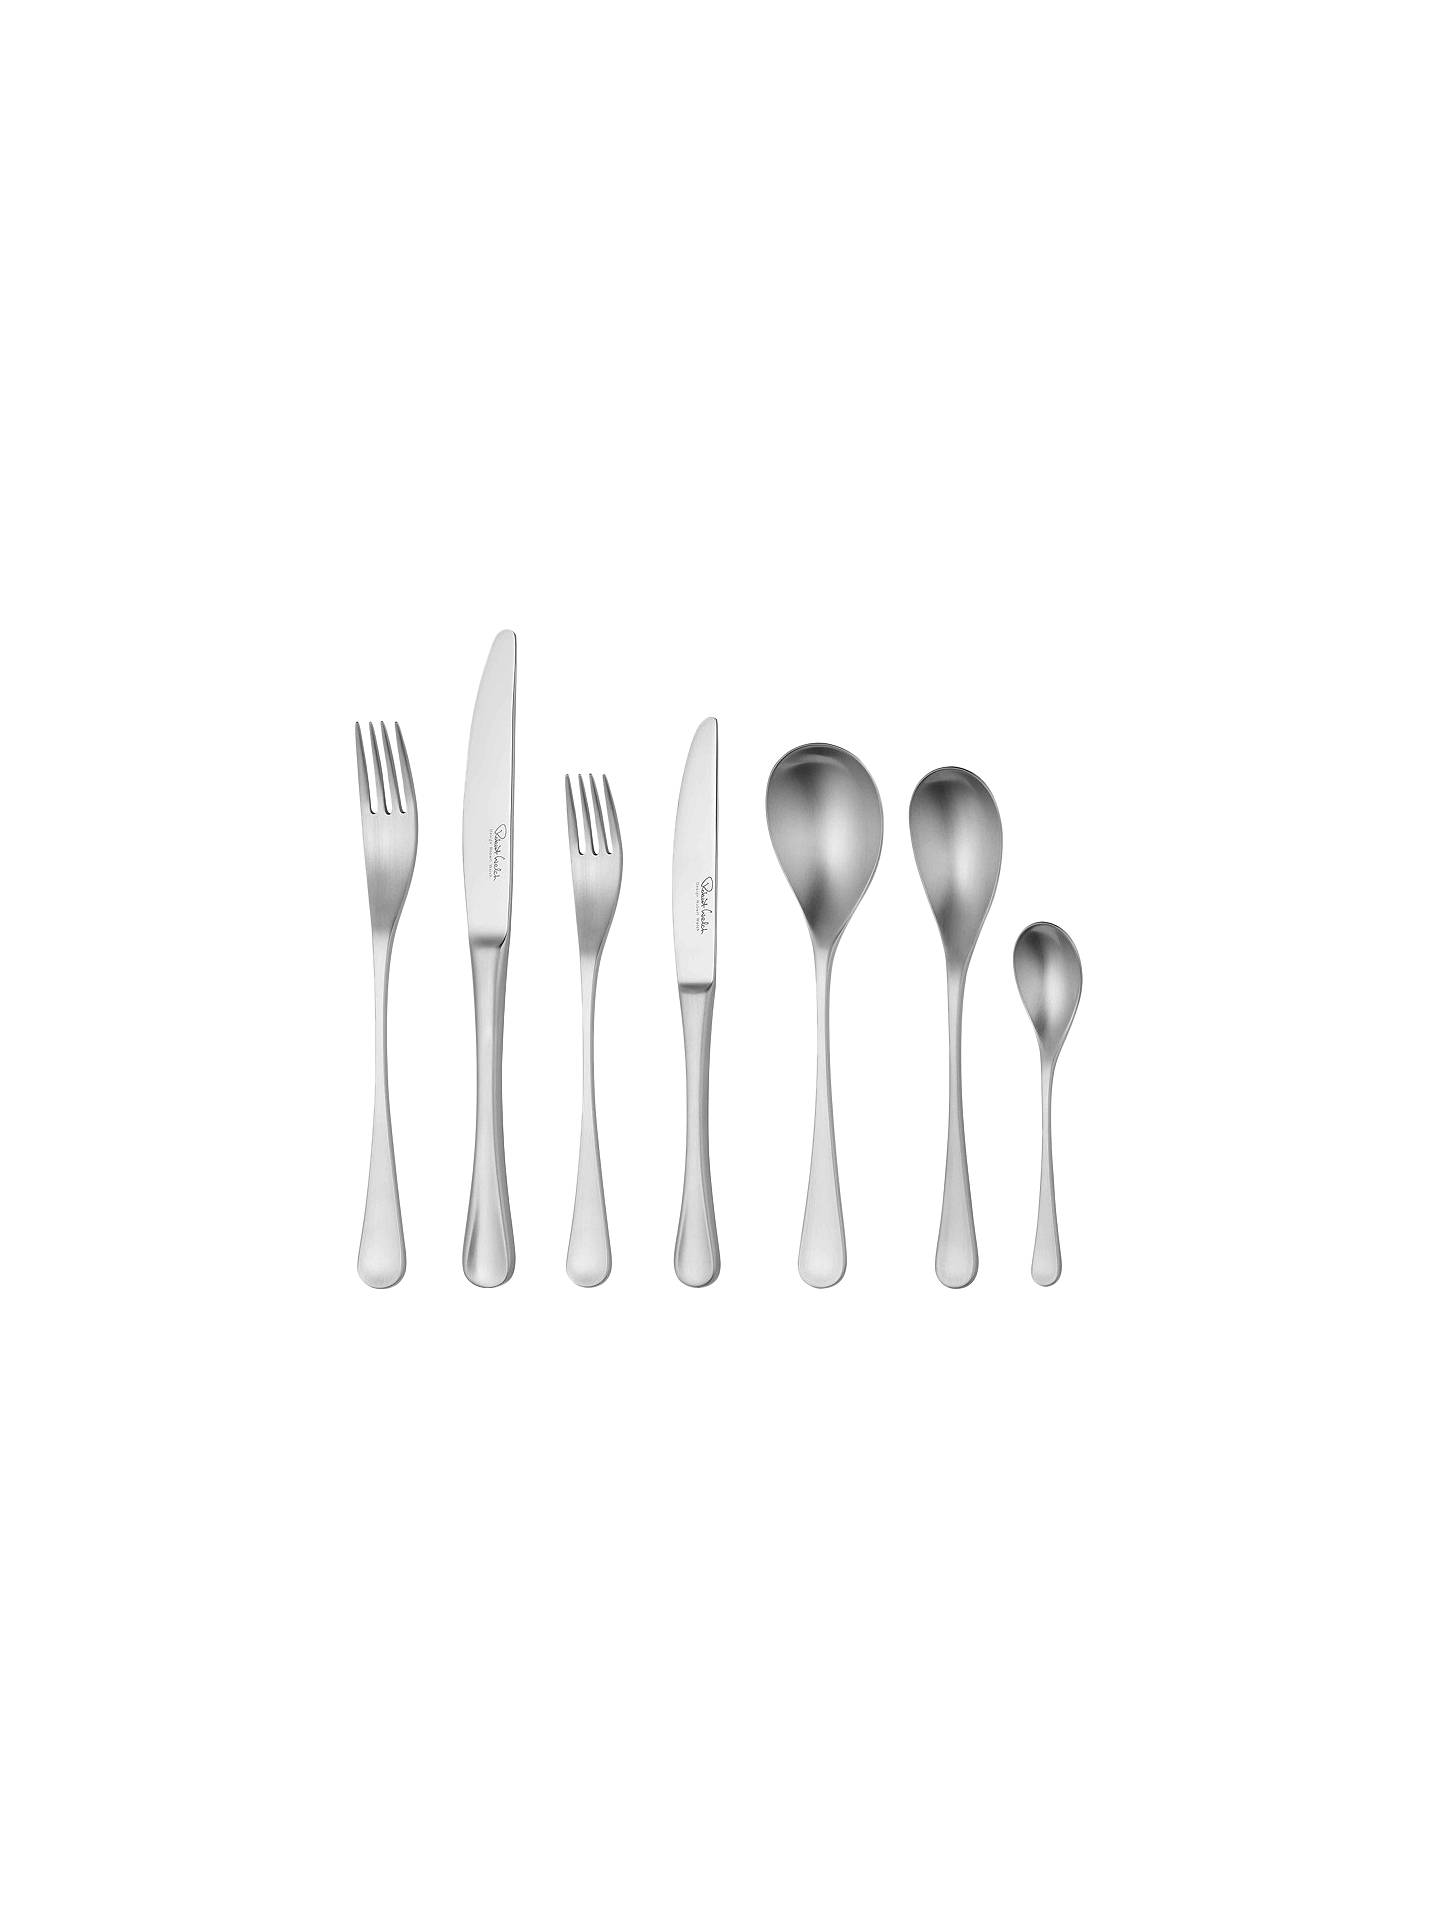 BuyRobert Welch RW2 Satin Stainless Steel Cutlery Set, 84 Piece Online at johnlewis.com